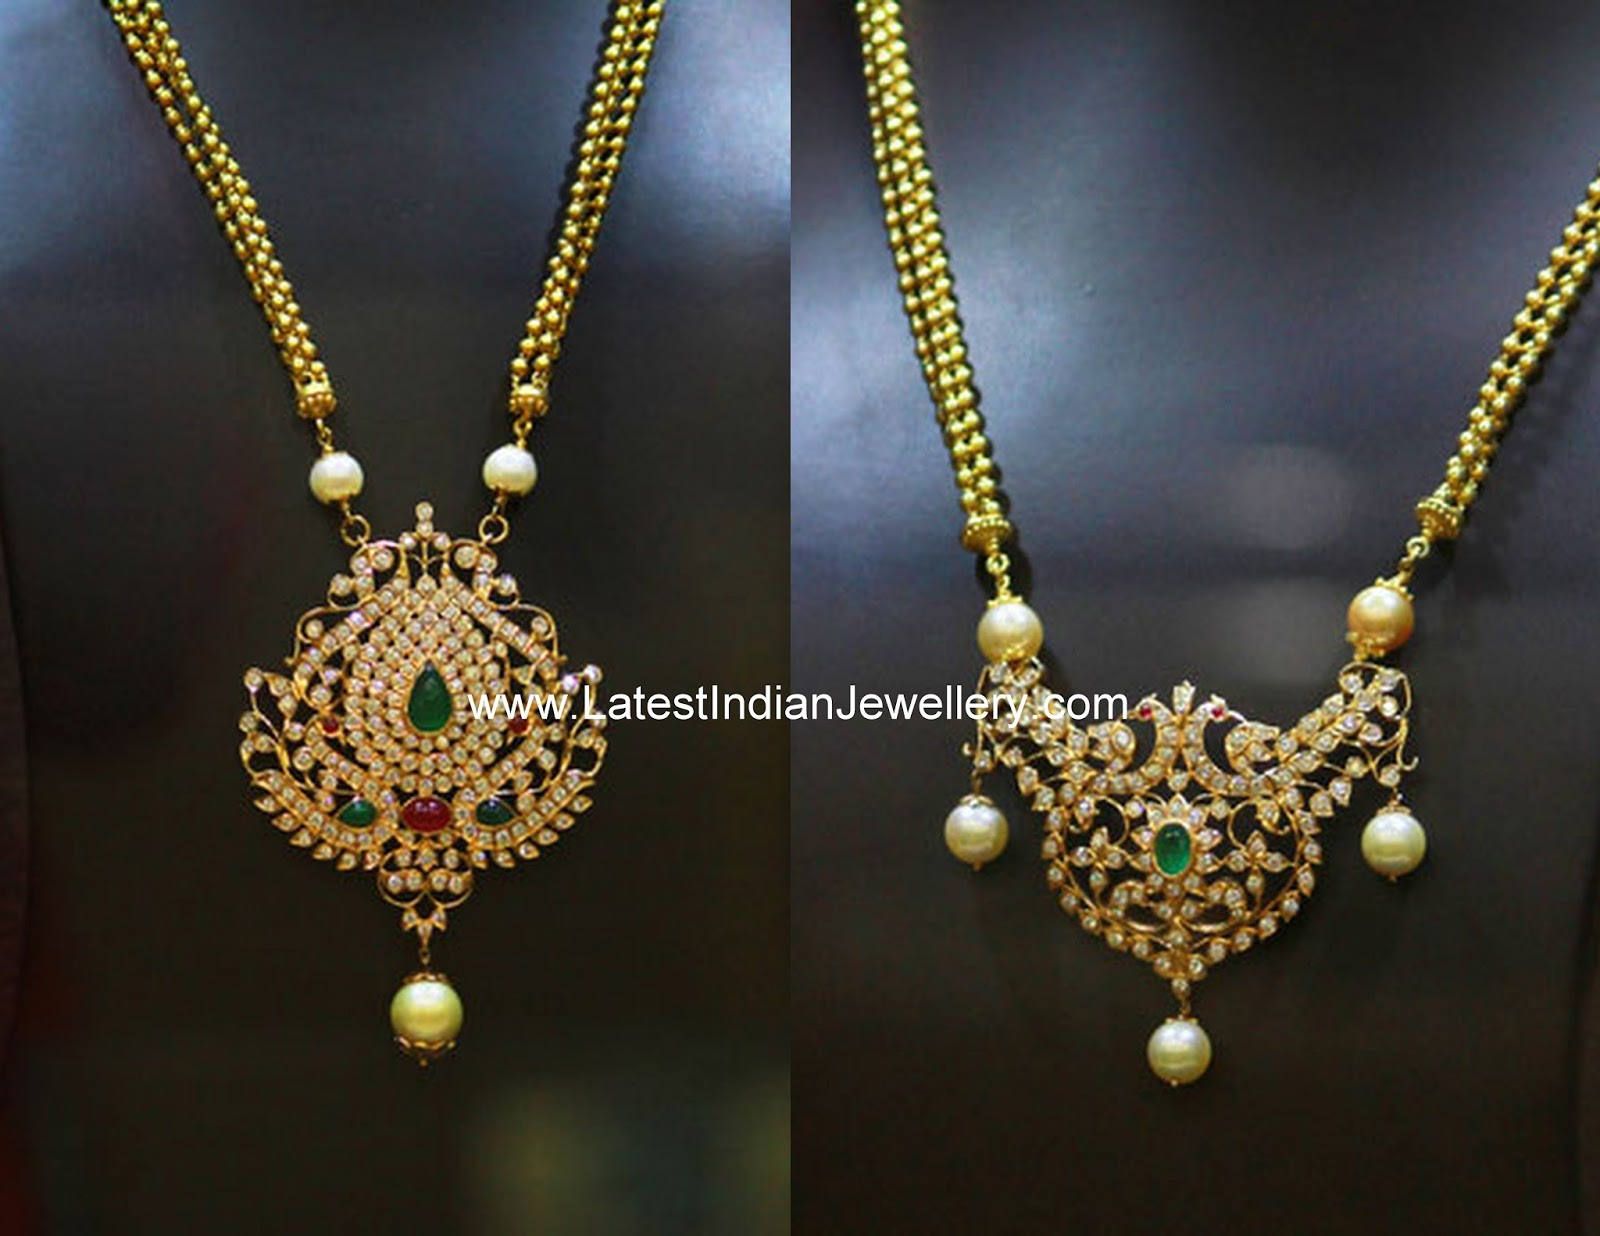 Simple diamond pendant necklace designs diamond pendant necklace designs aloadofball Gallery